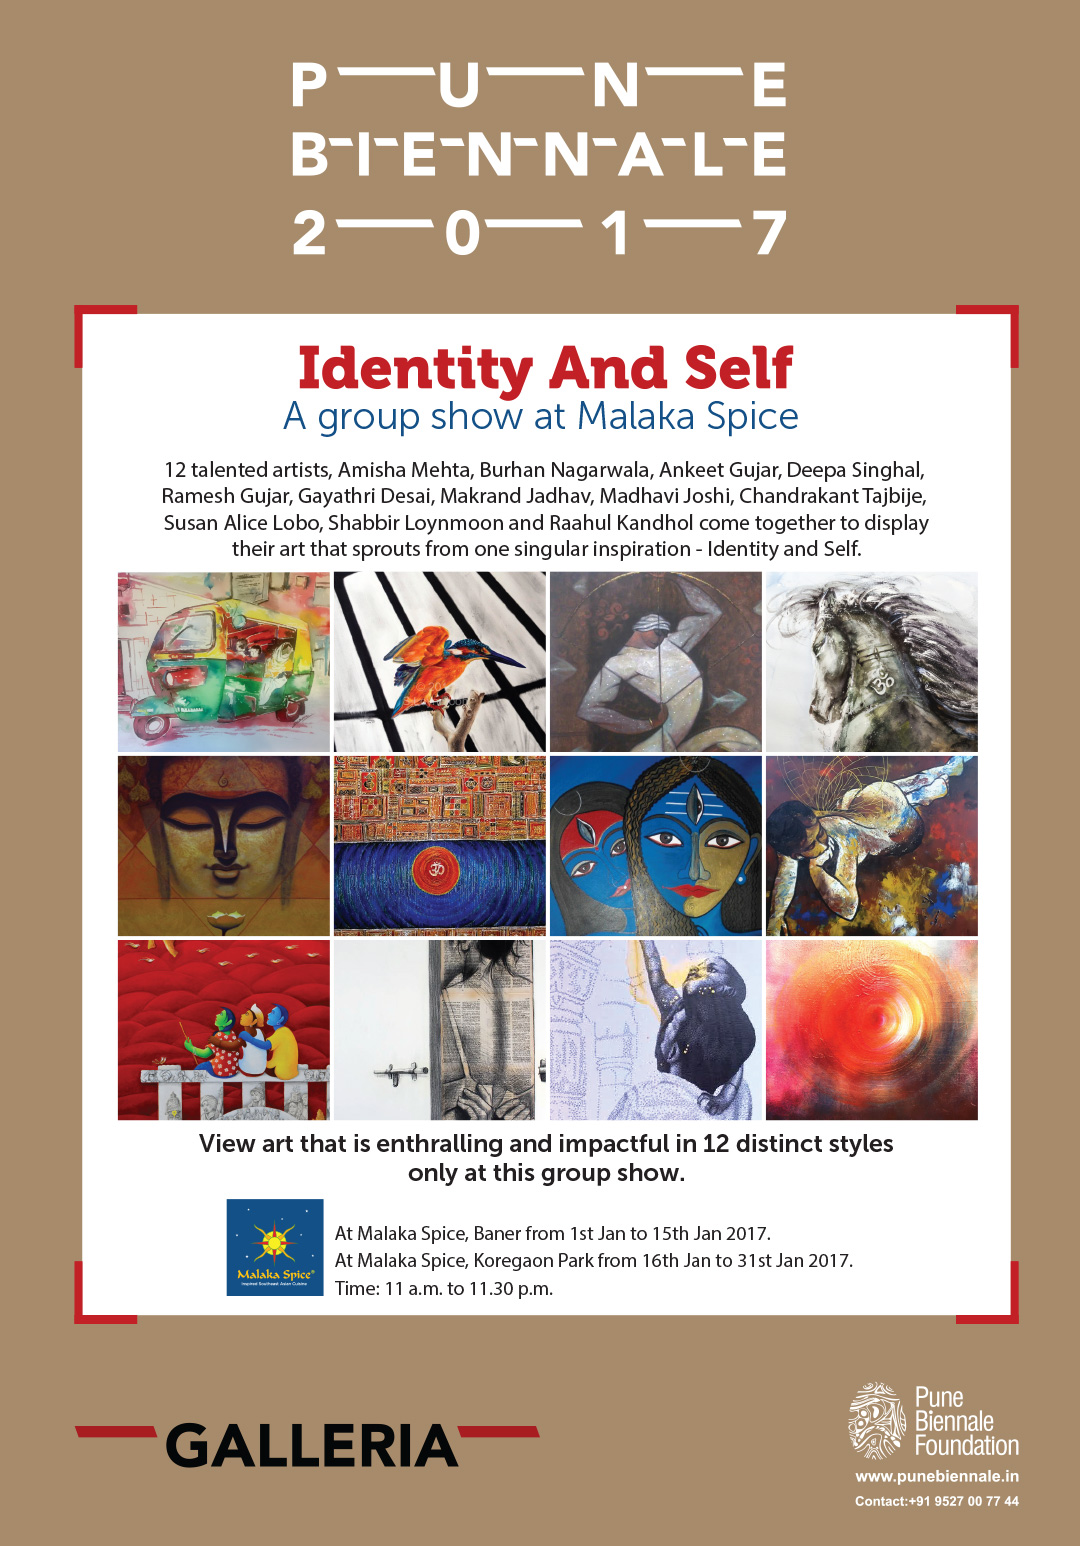 Pune Biennale, Identity And Self, Malaka Spice